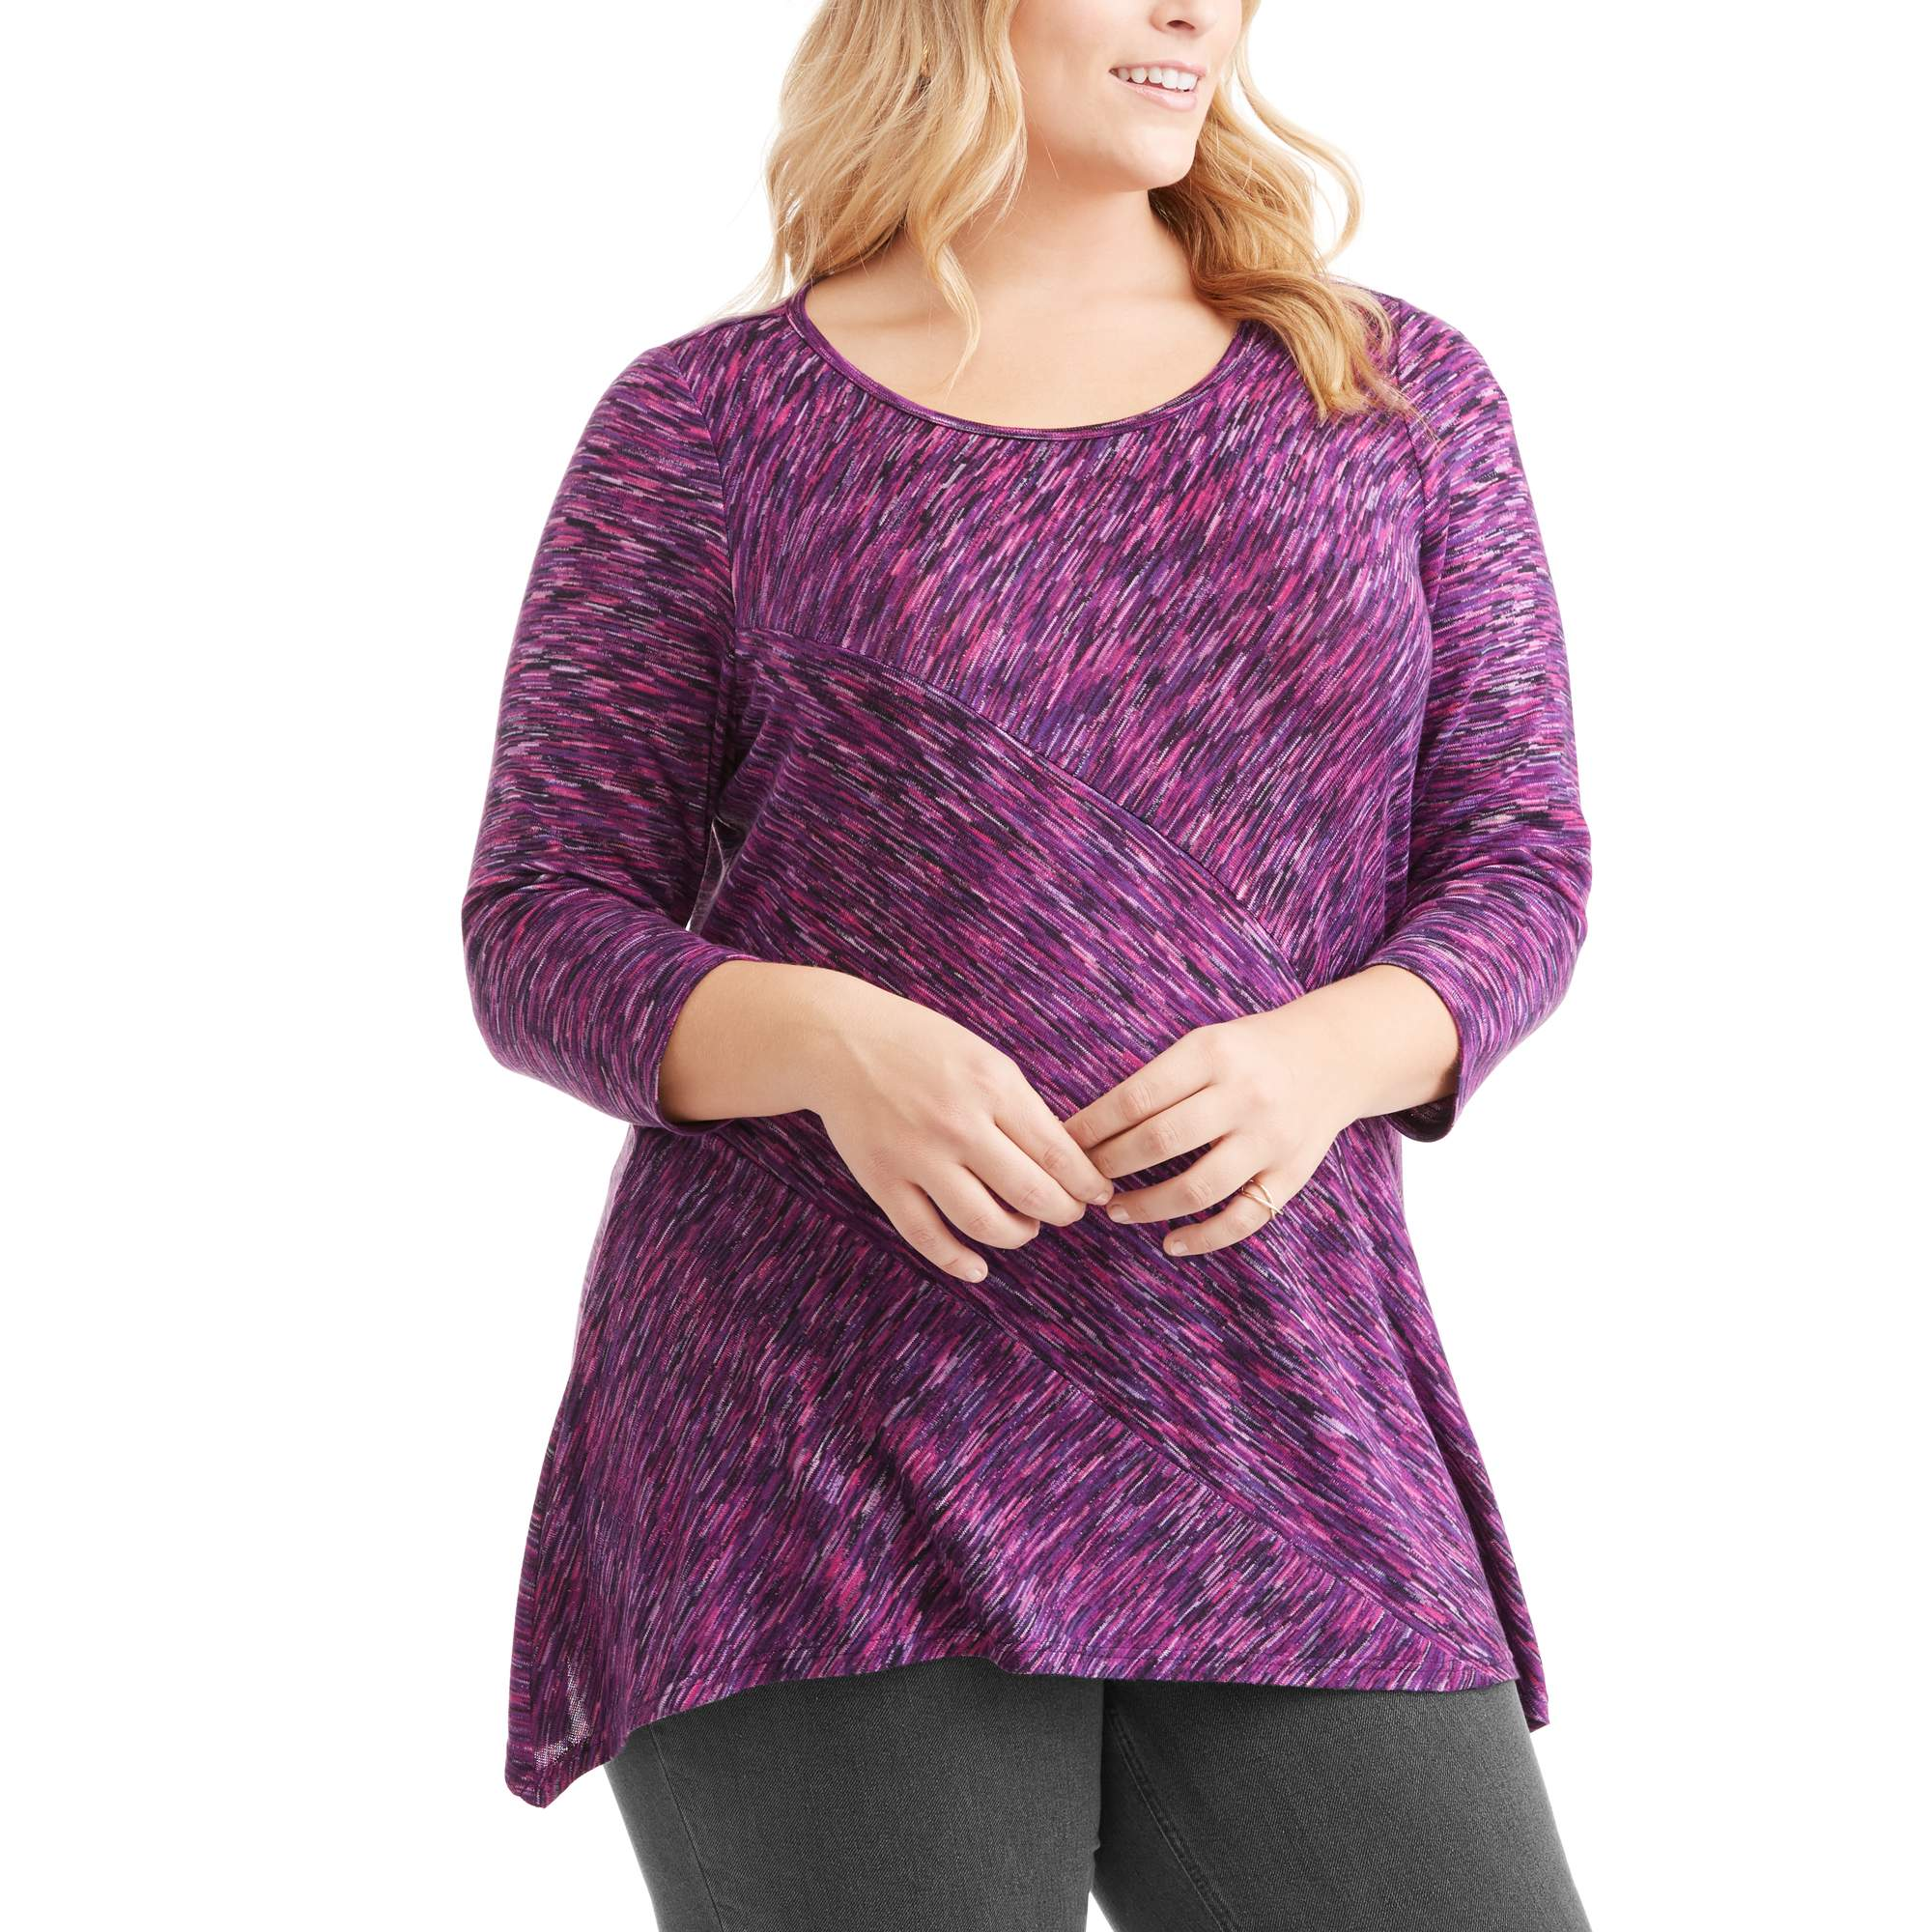 Lifestyle Attitude Women's Plus Hacci Knit Sharkbite Top